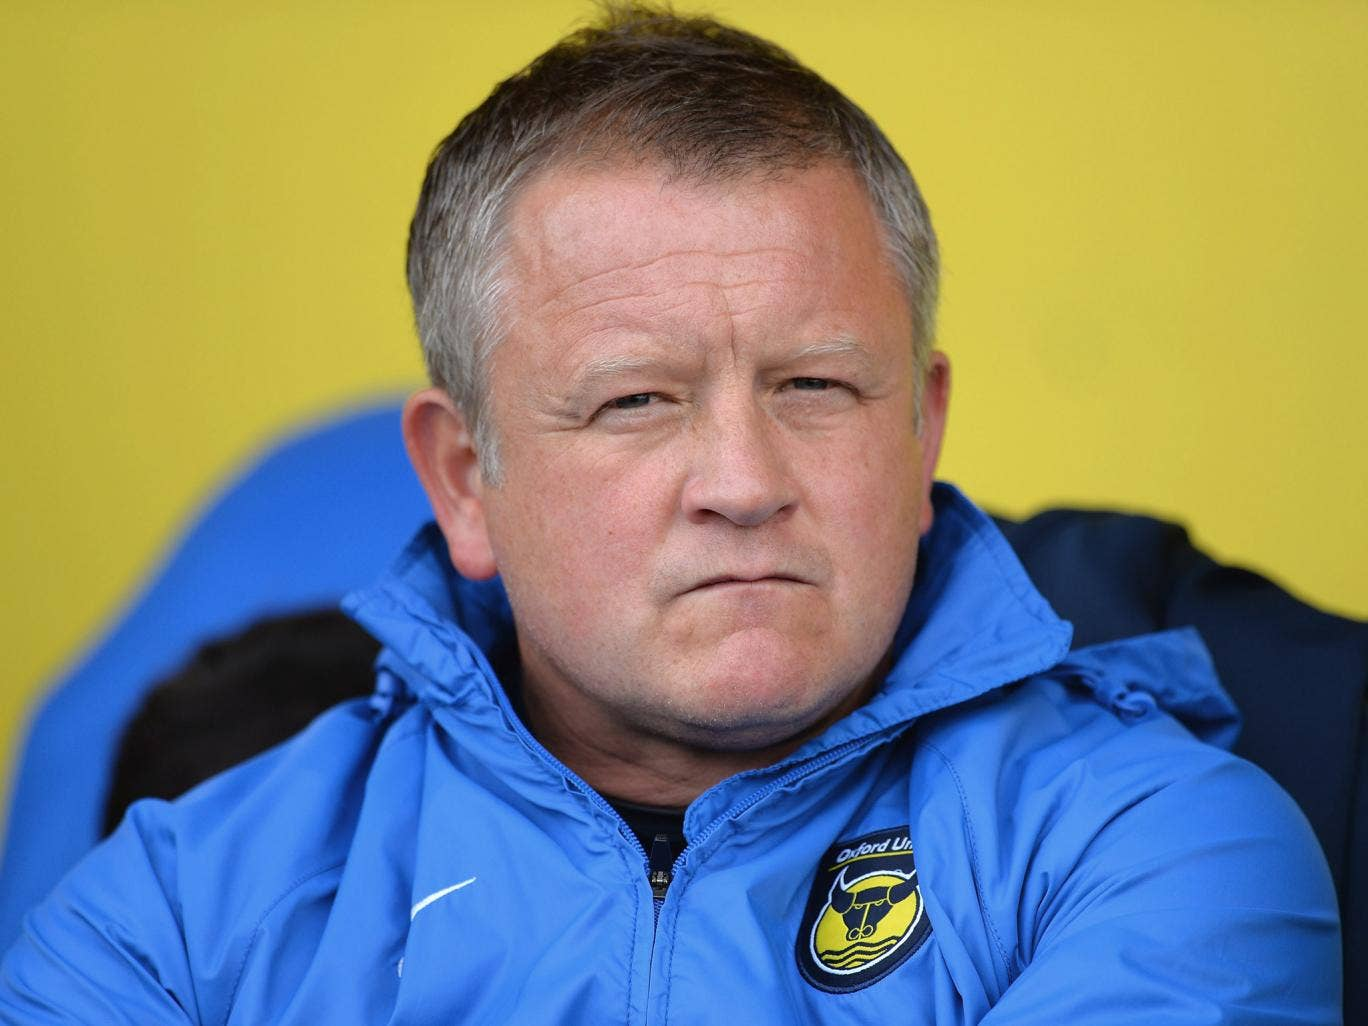 Oxford United manager Chris Wilder says he is focused on achieving promotion